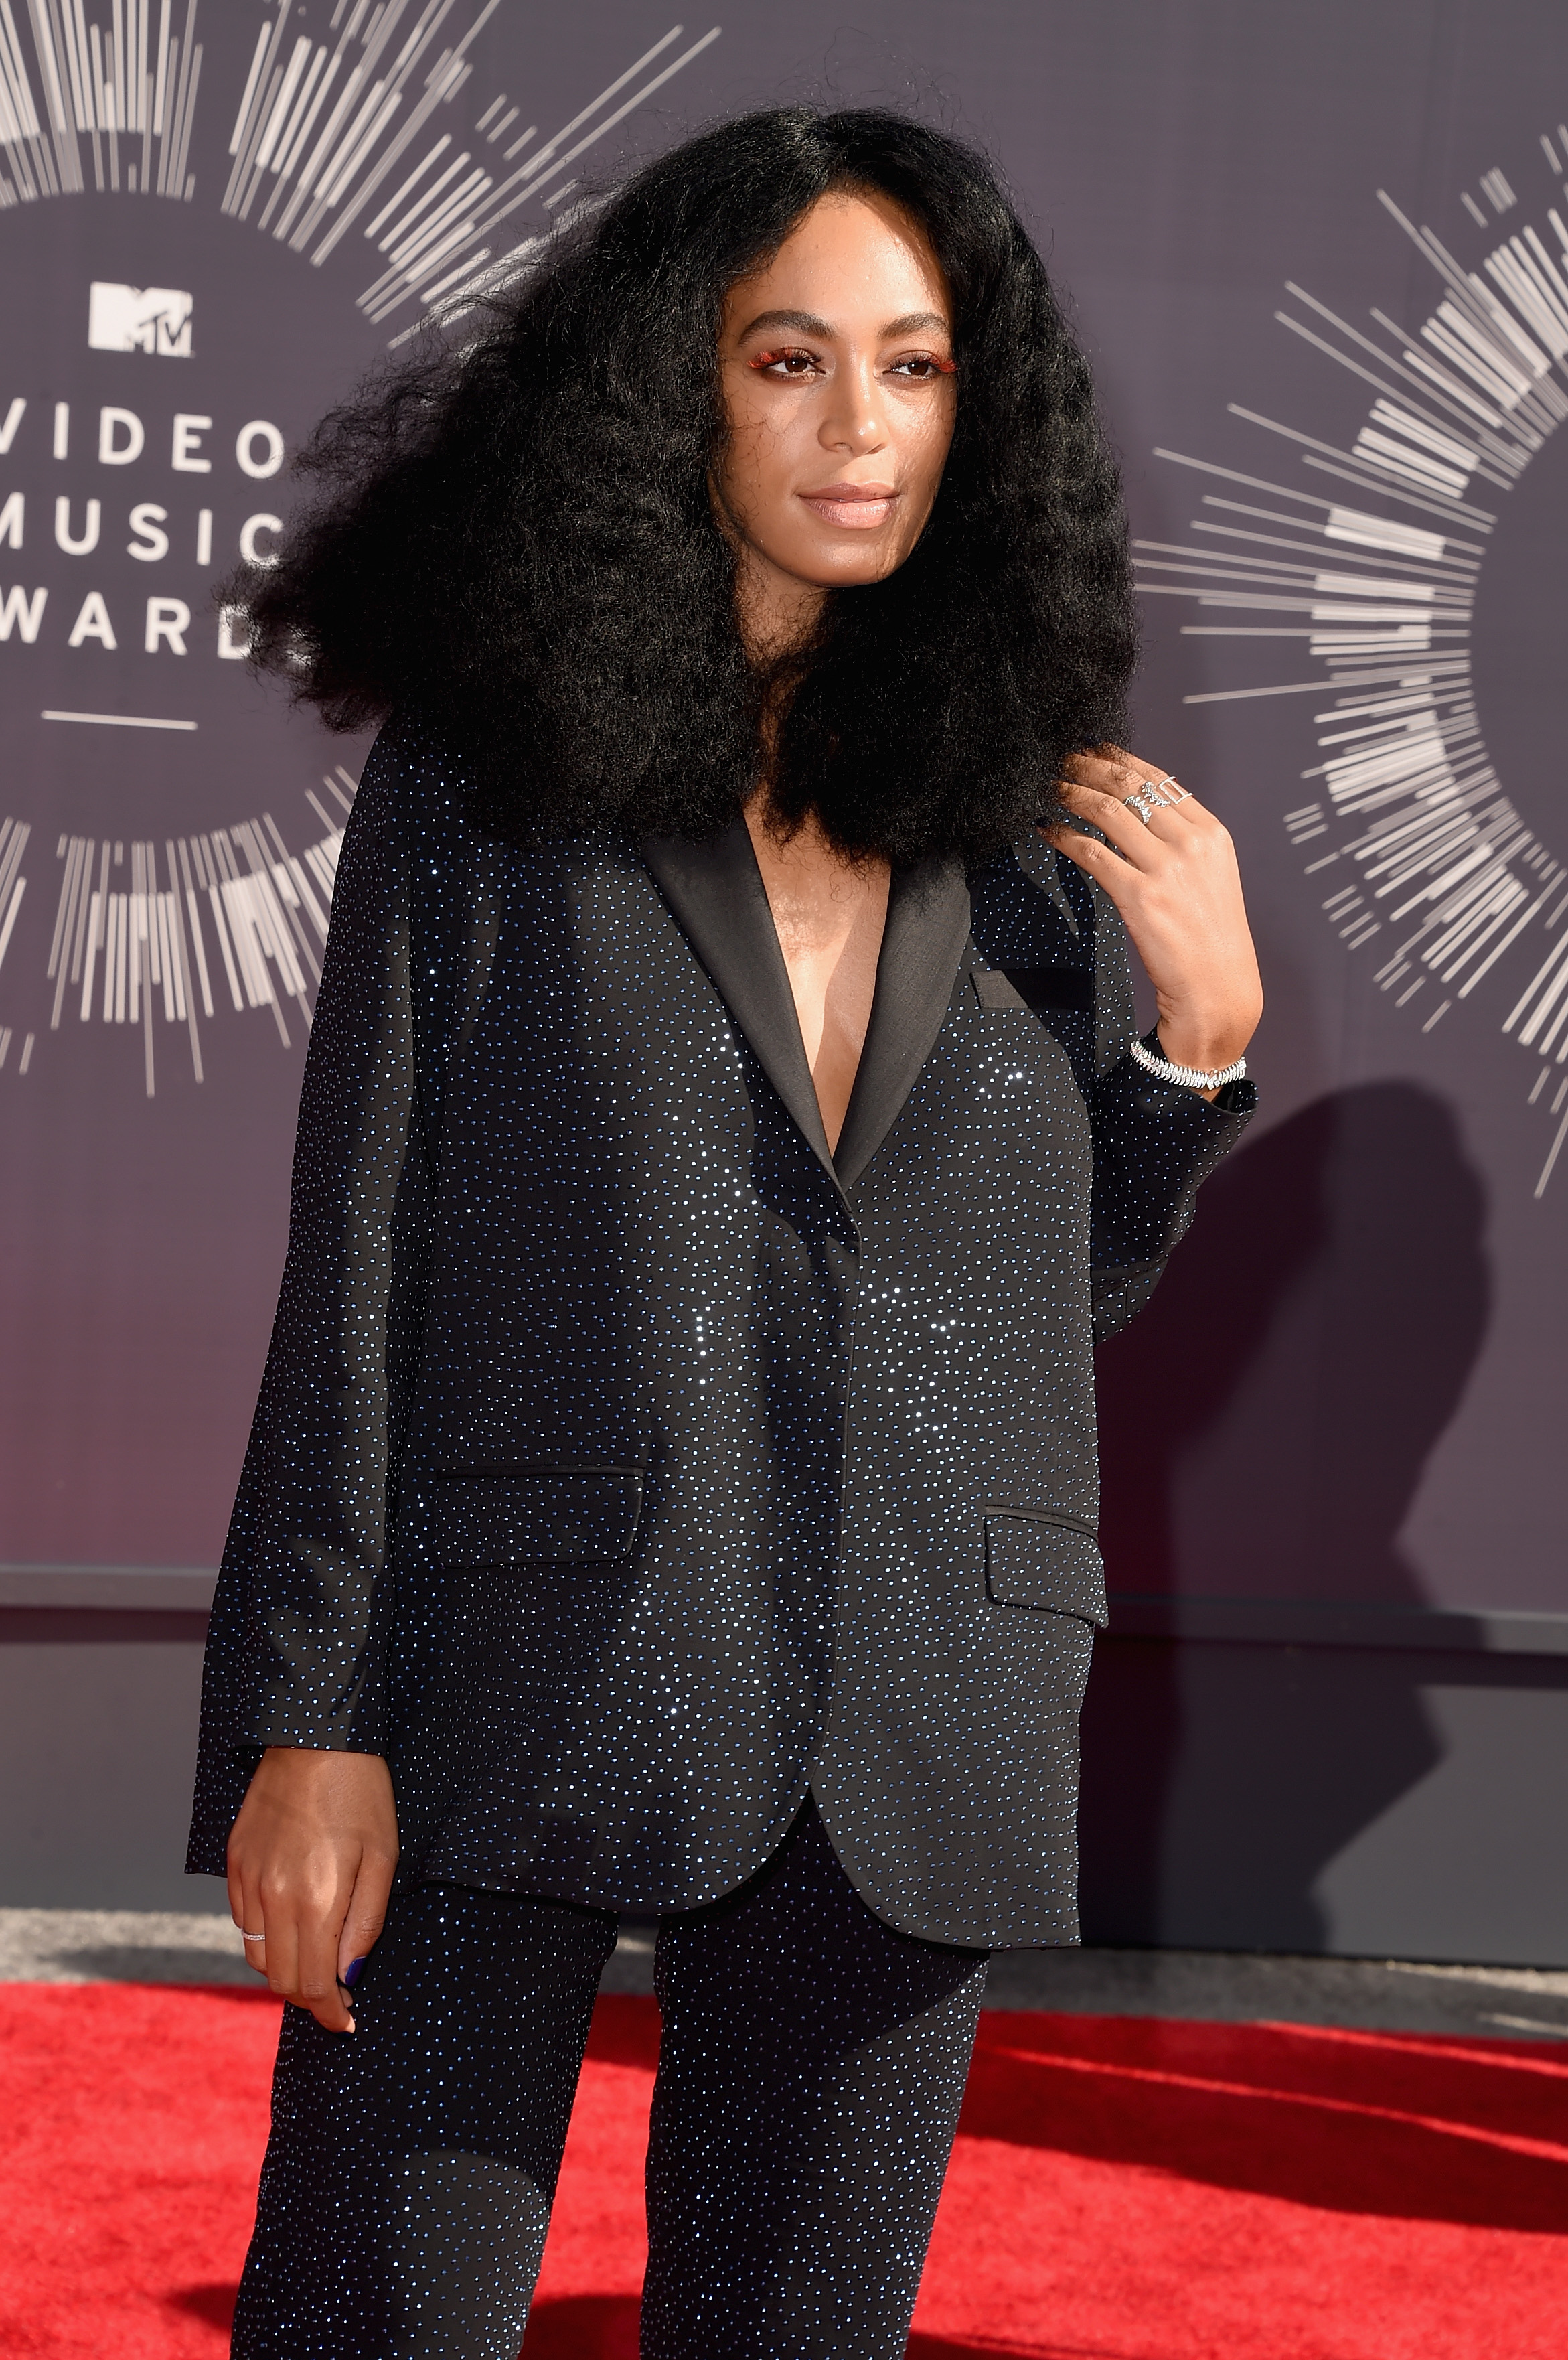 Solange Knowles attends the 2014 MTV Video Music Awards at The Forum on August 24, 2014 in Inglewood, California.